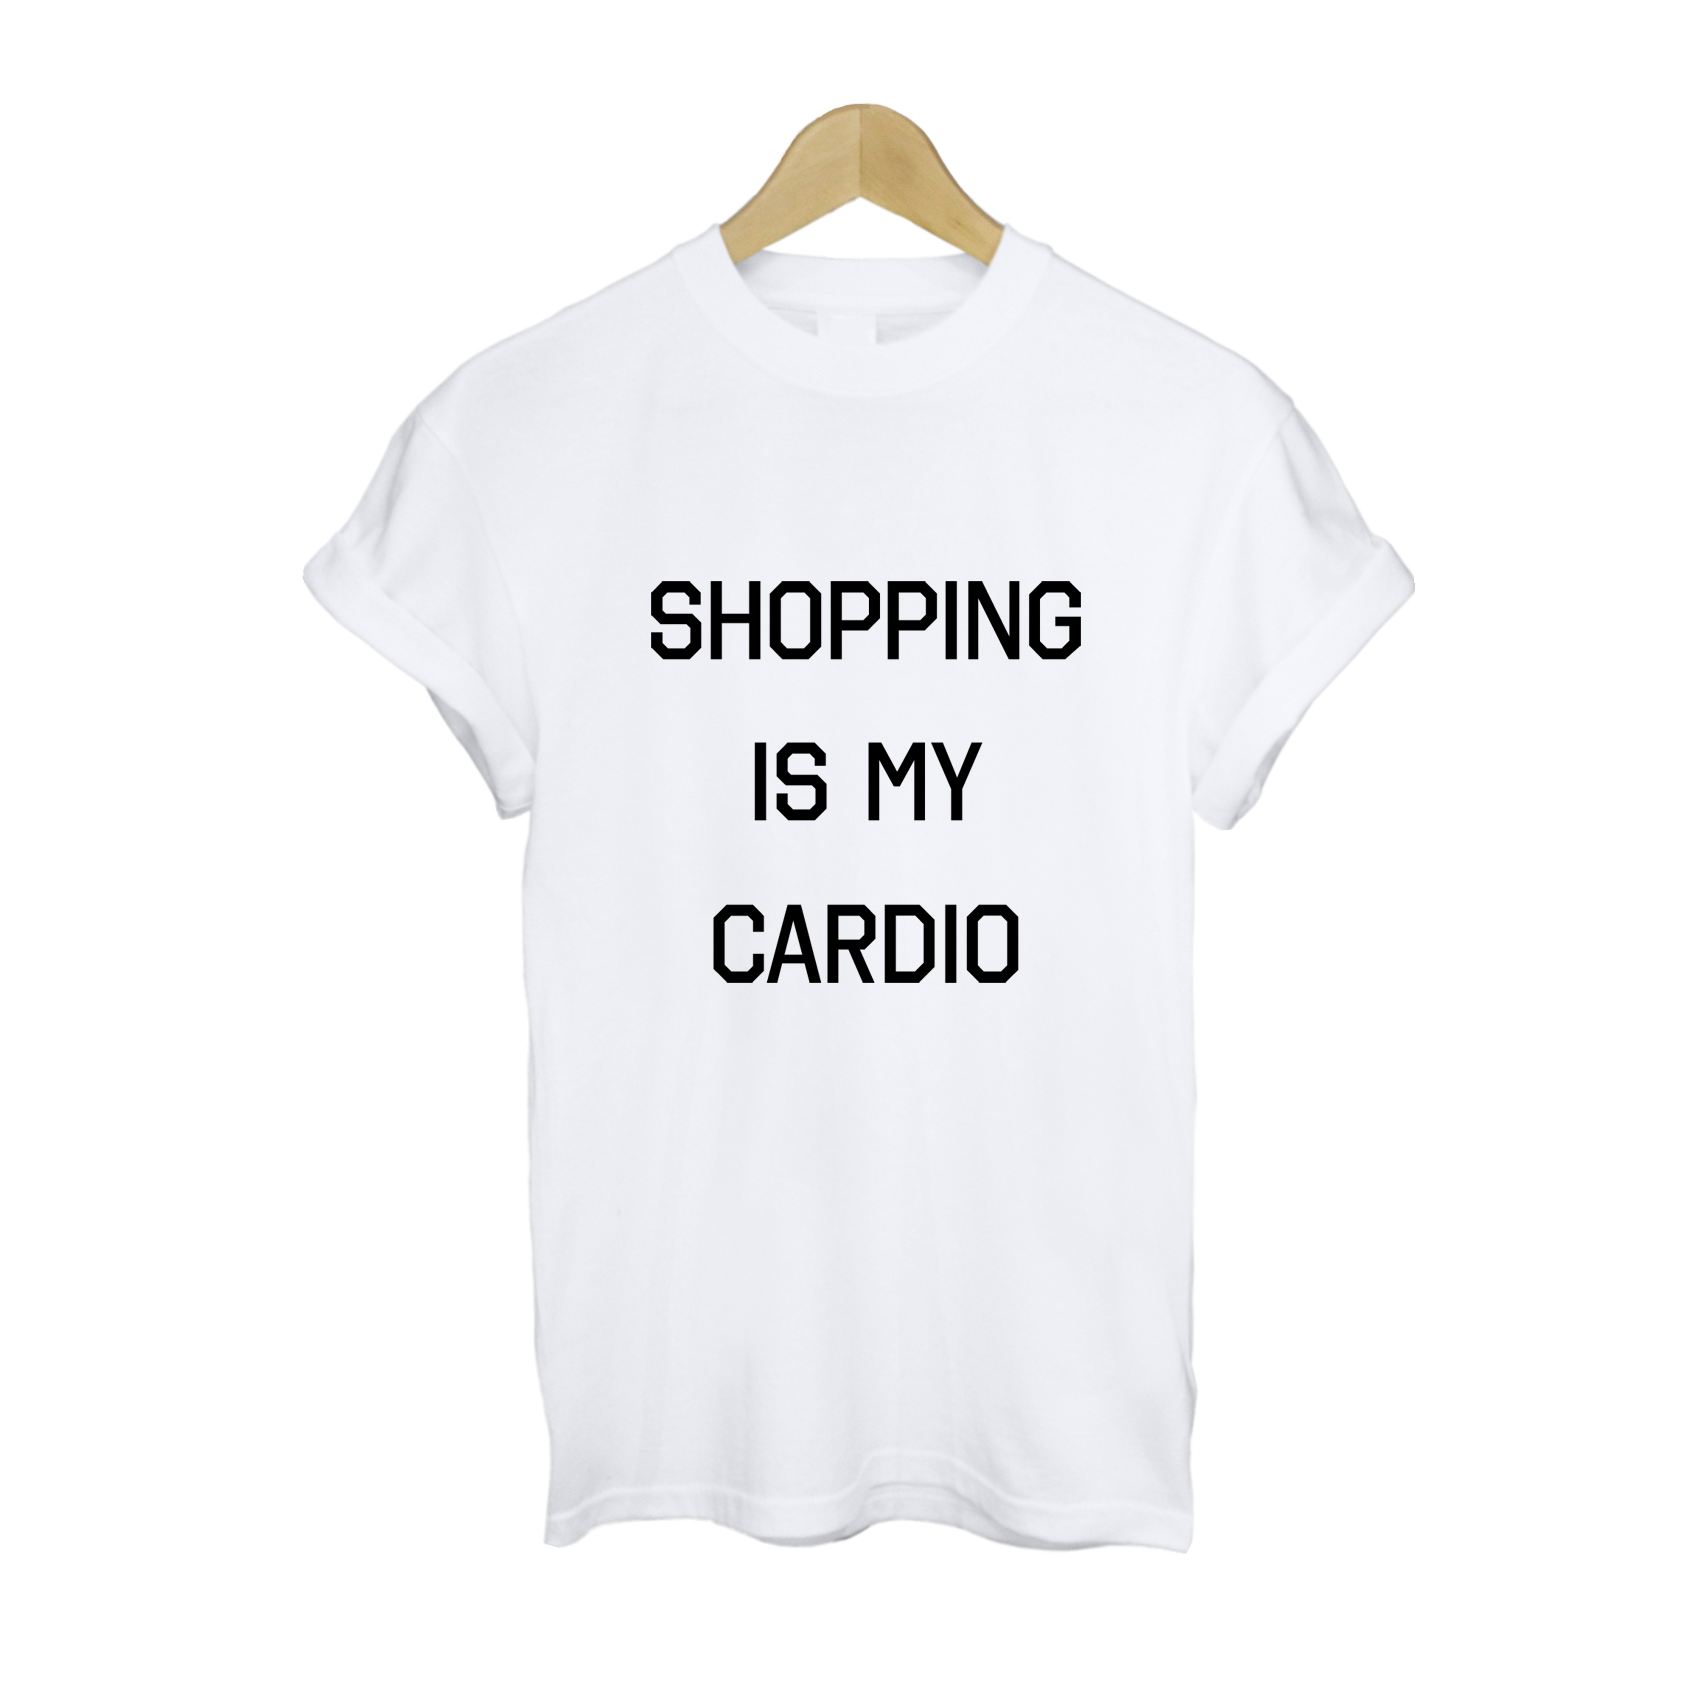 Shopping Is My Cardio T Shirt £11   Free UK Delivery   10% OFF